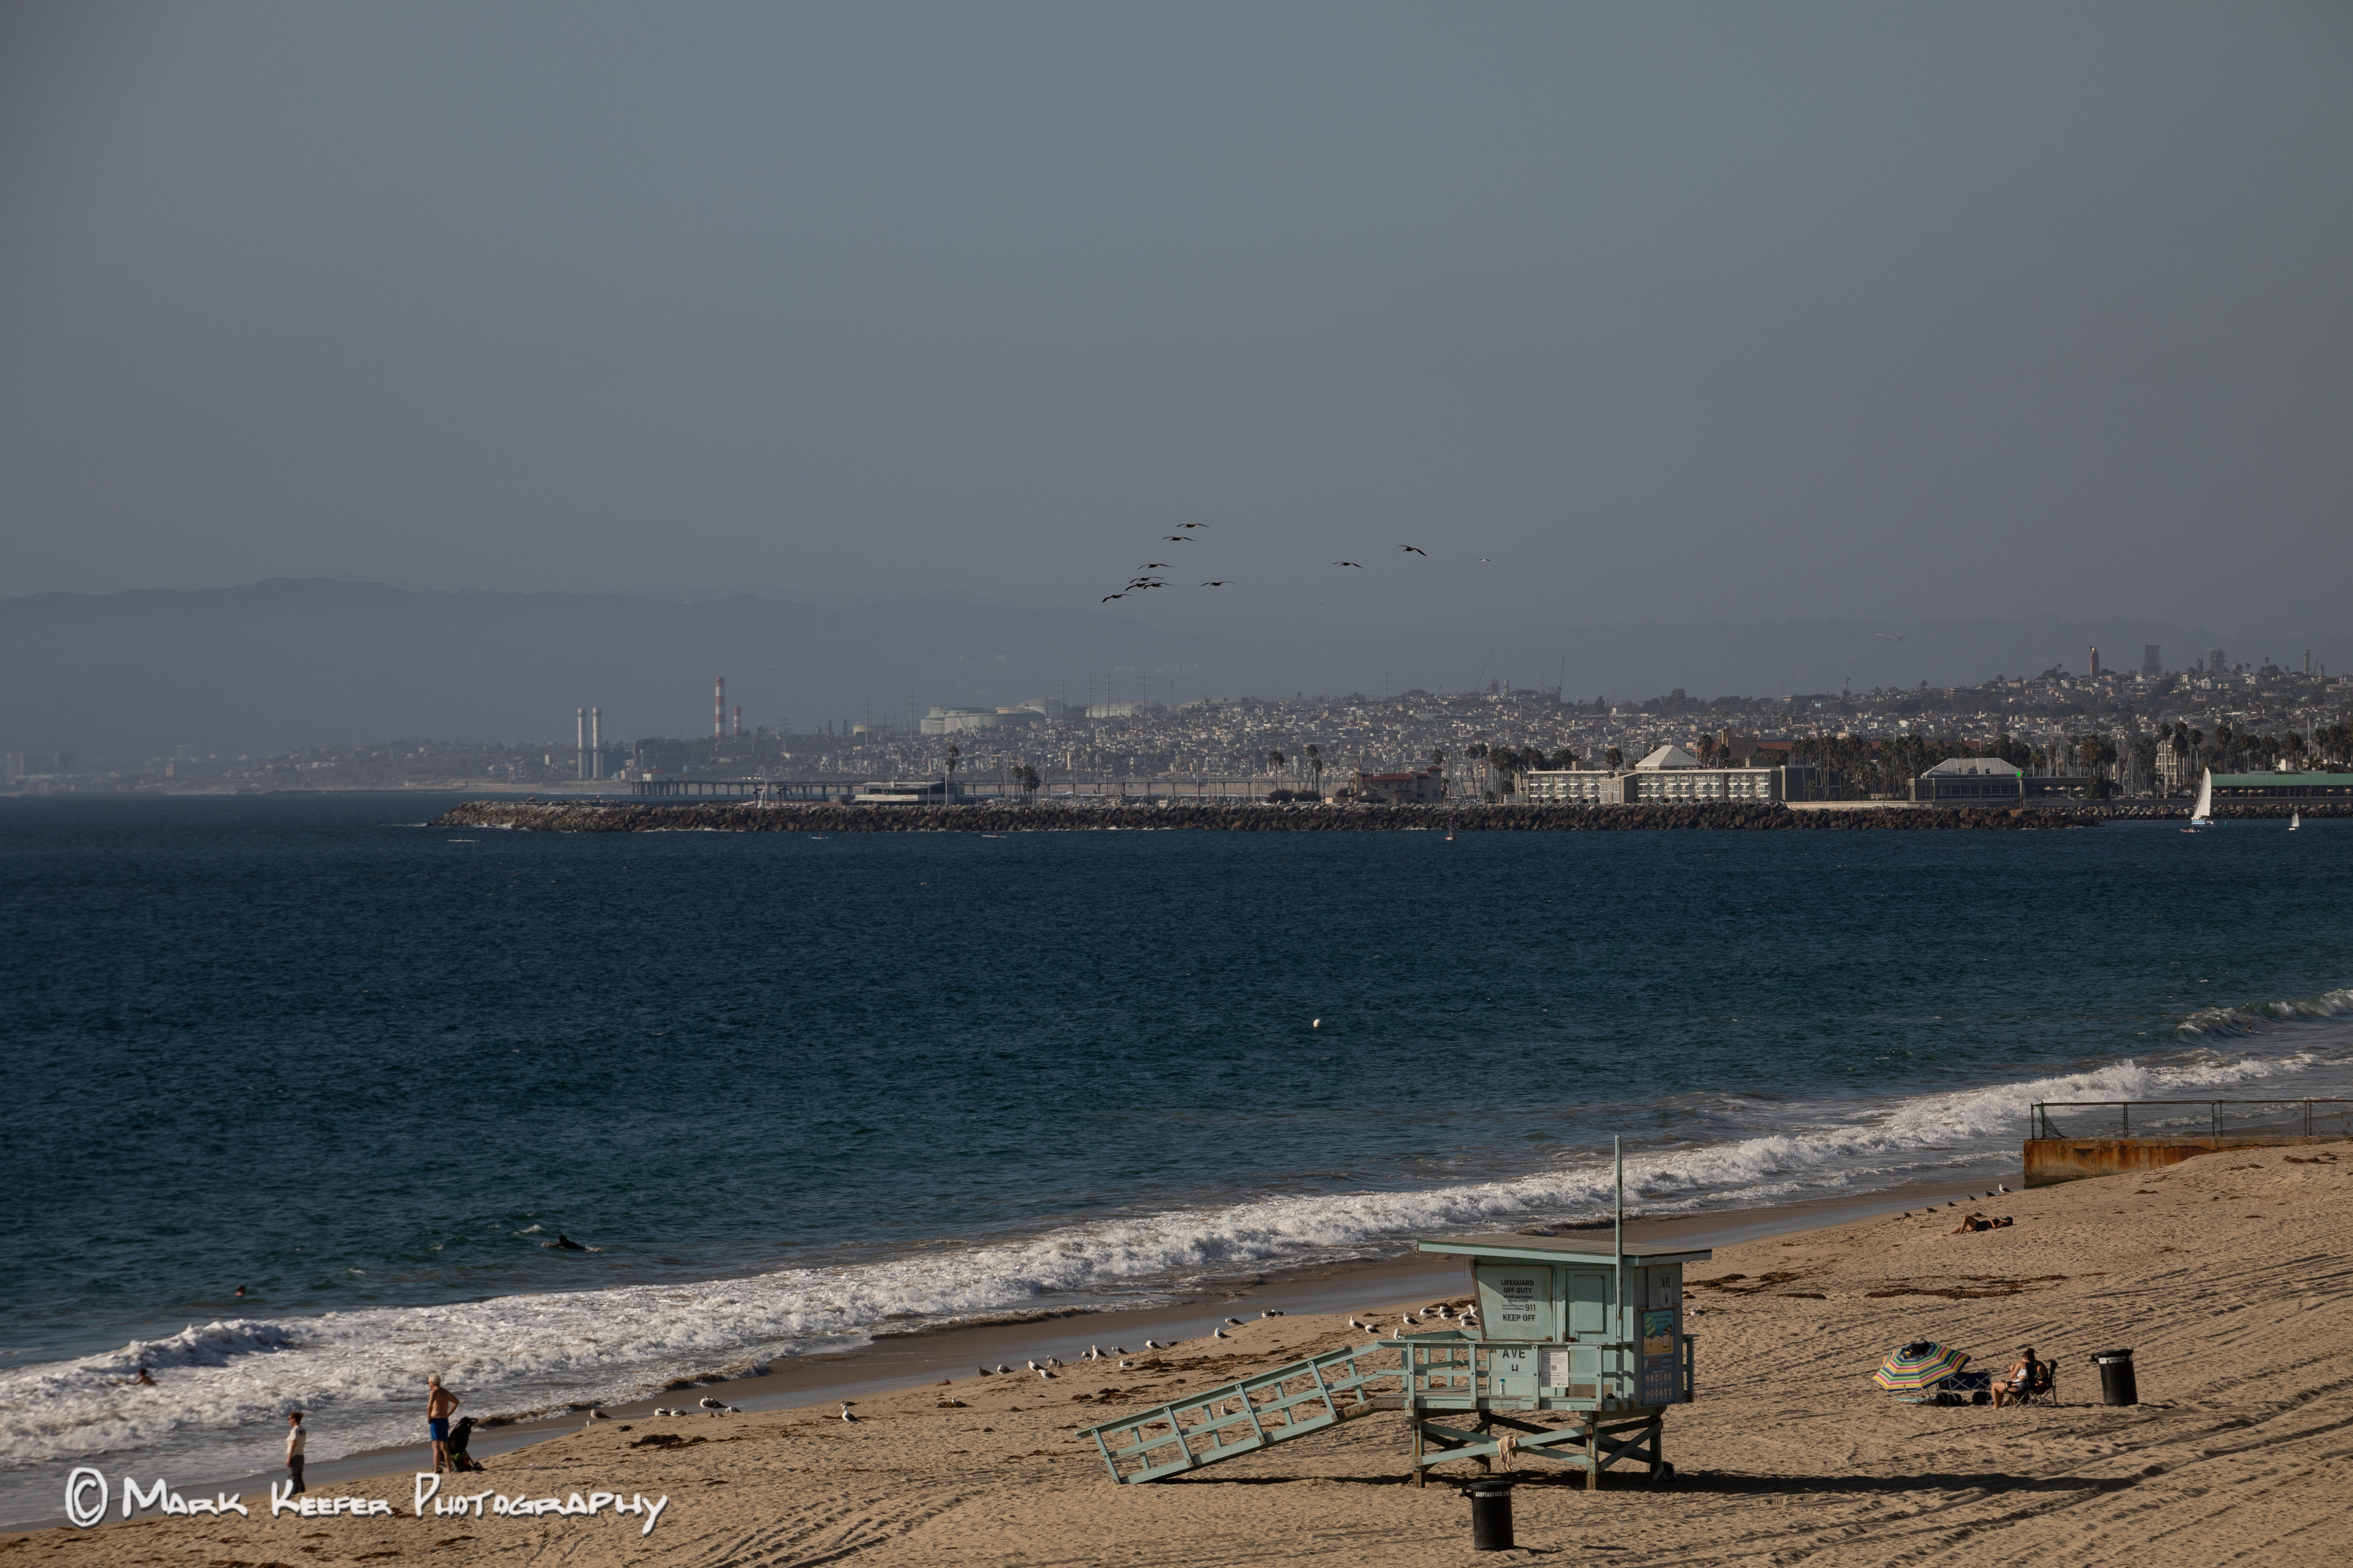 Pelicans in Souther Califirnia shoreline 5D 46379-1.jpg